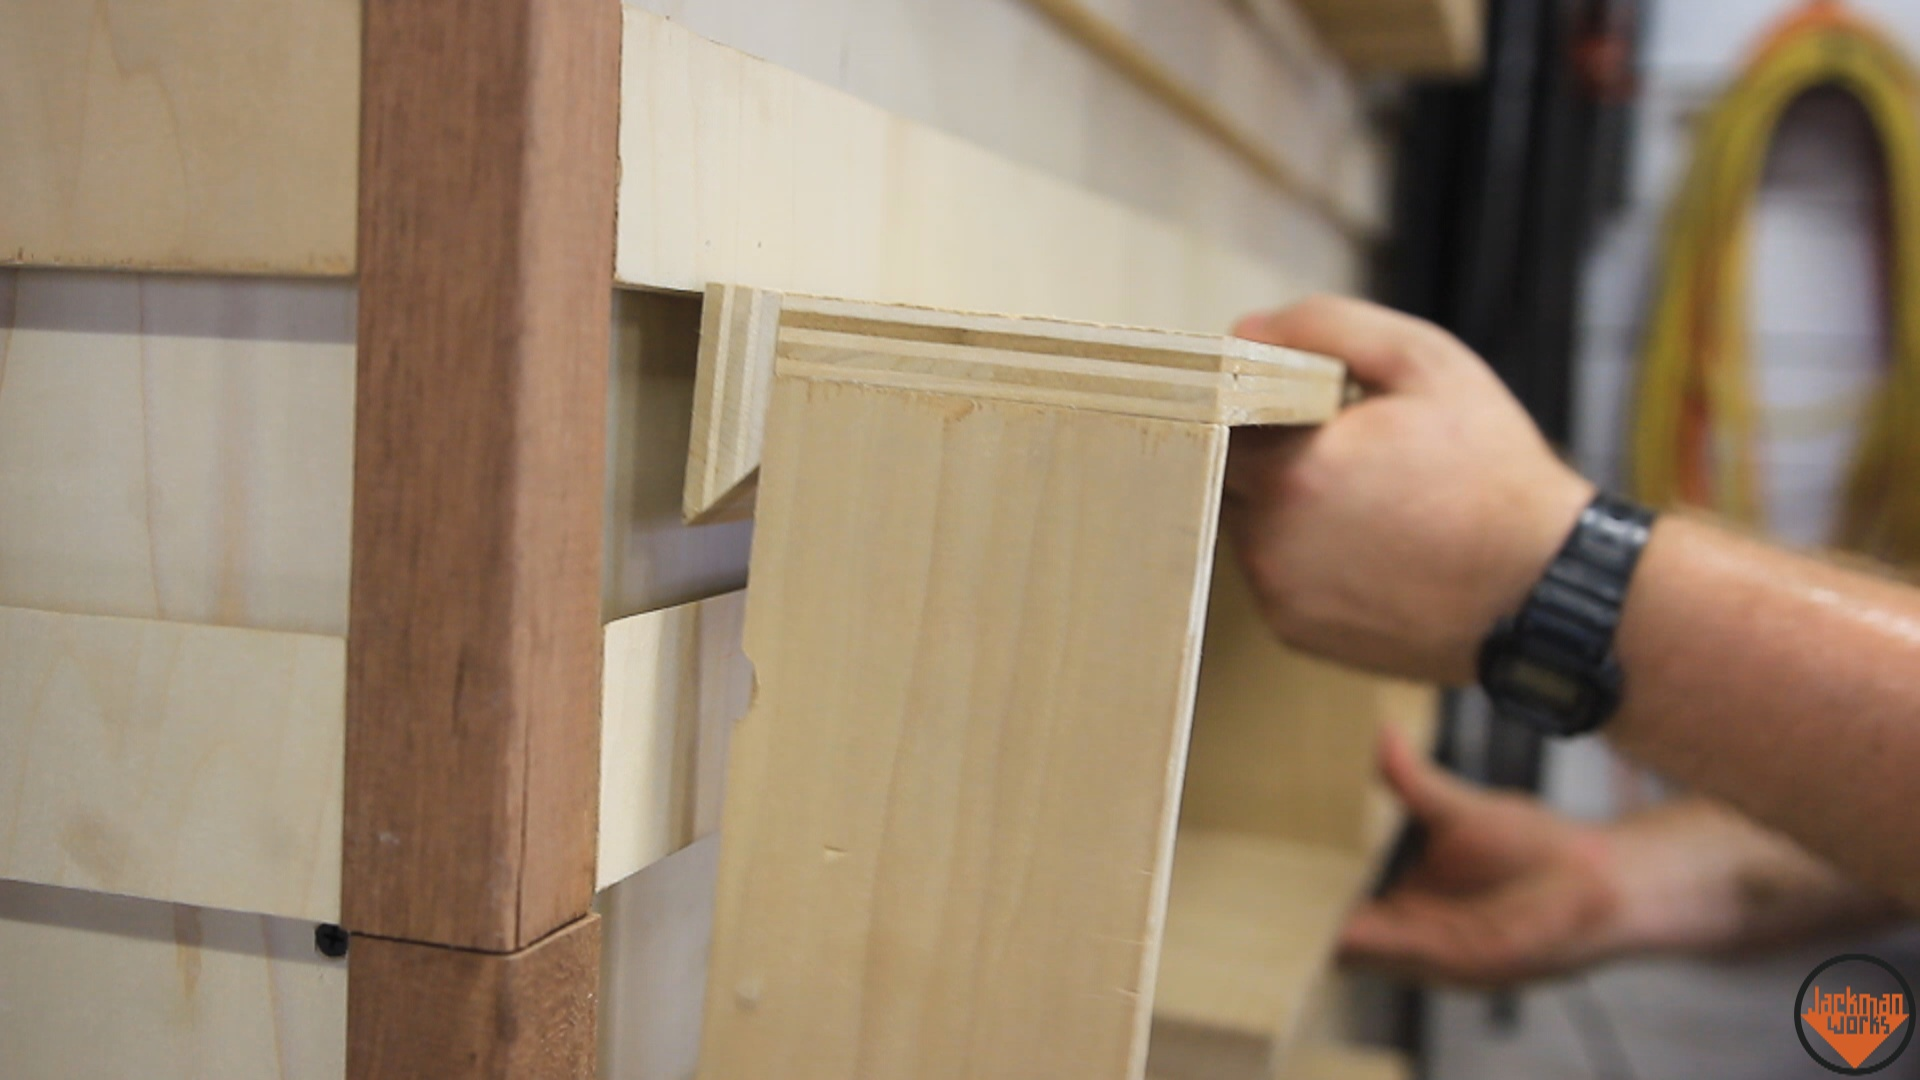 French Cleat System,room Decor Diy,diy Projects,DIY,french Cleat  Wall,pallet Wall,pallet Wood,clamp Rack,clamp Storage,woodshop,woodworking,carpentry  ...